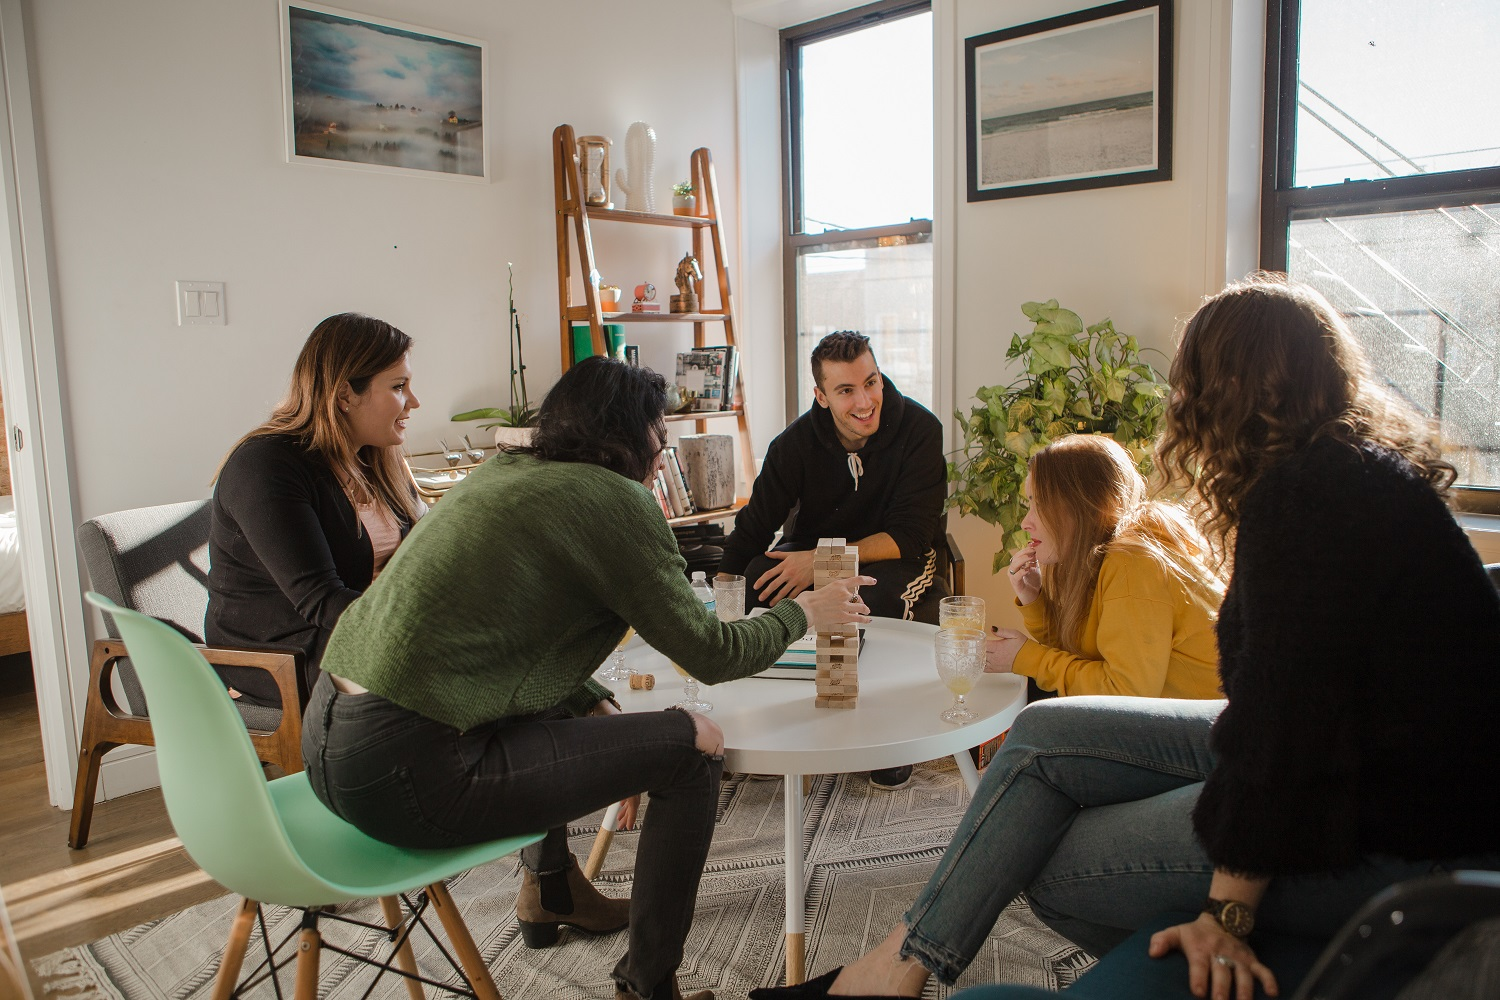 L'ultima frontiera dell'affitto a New York: il co-living